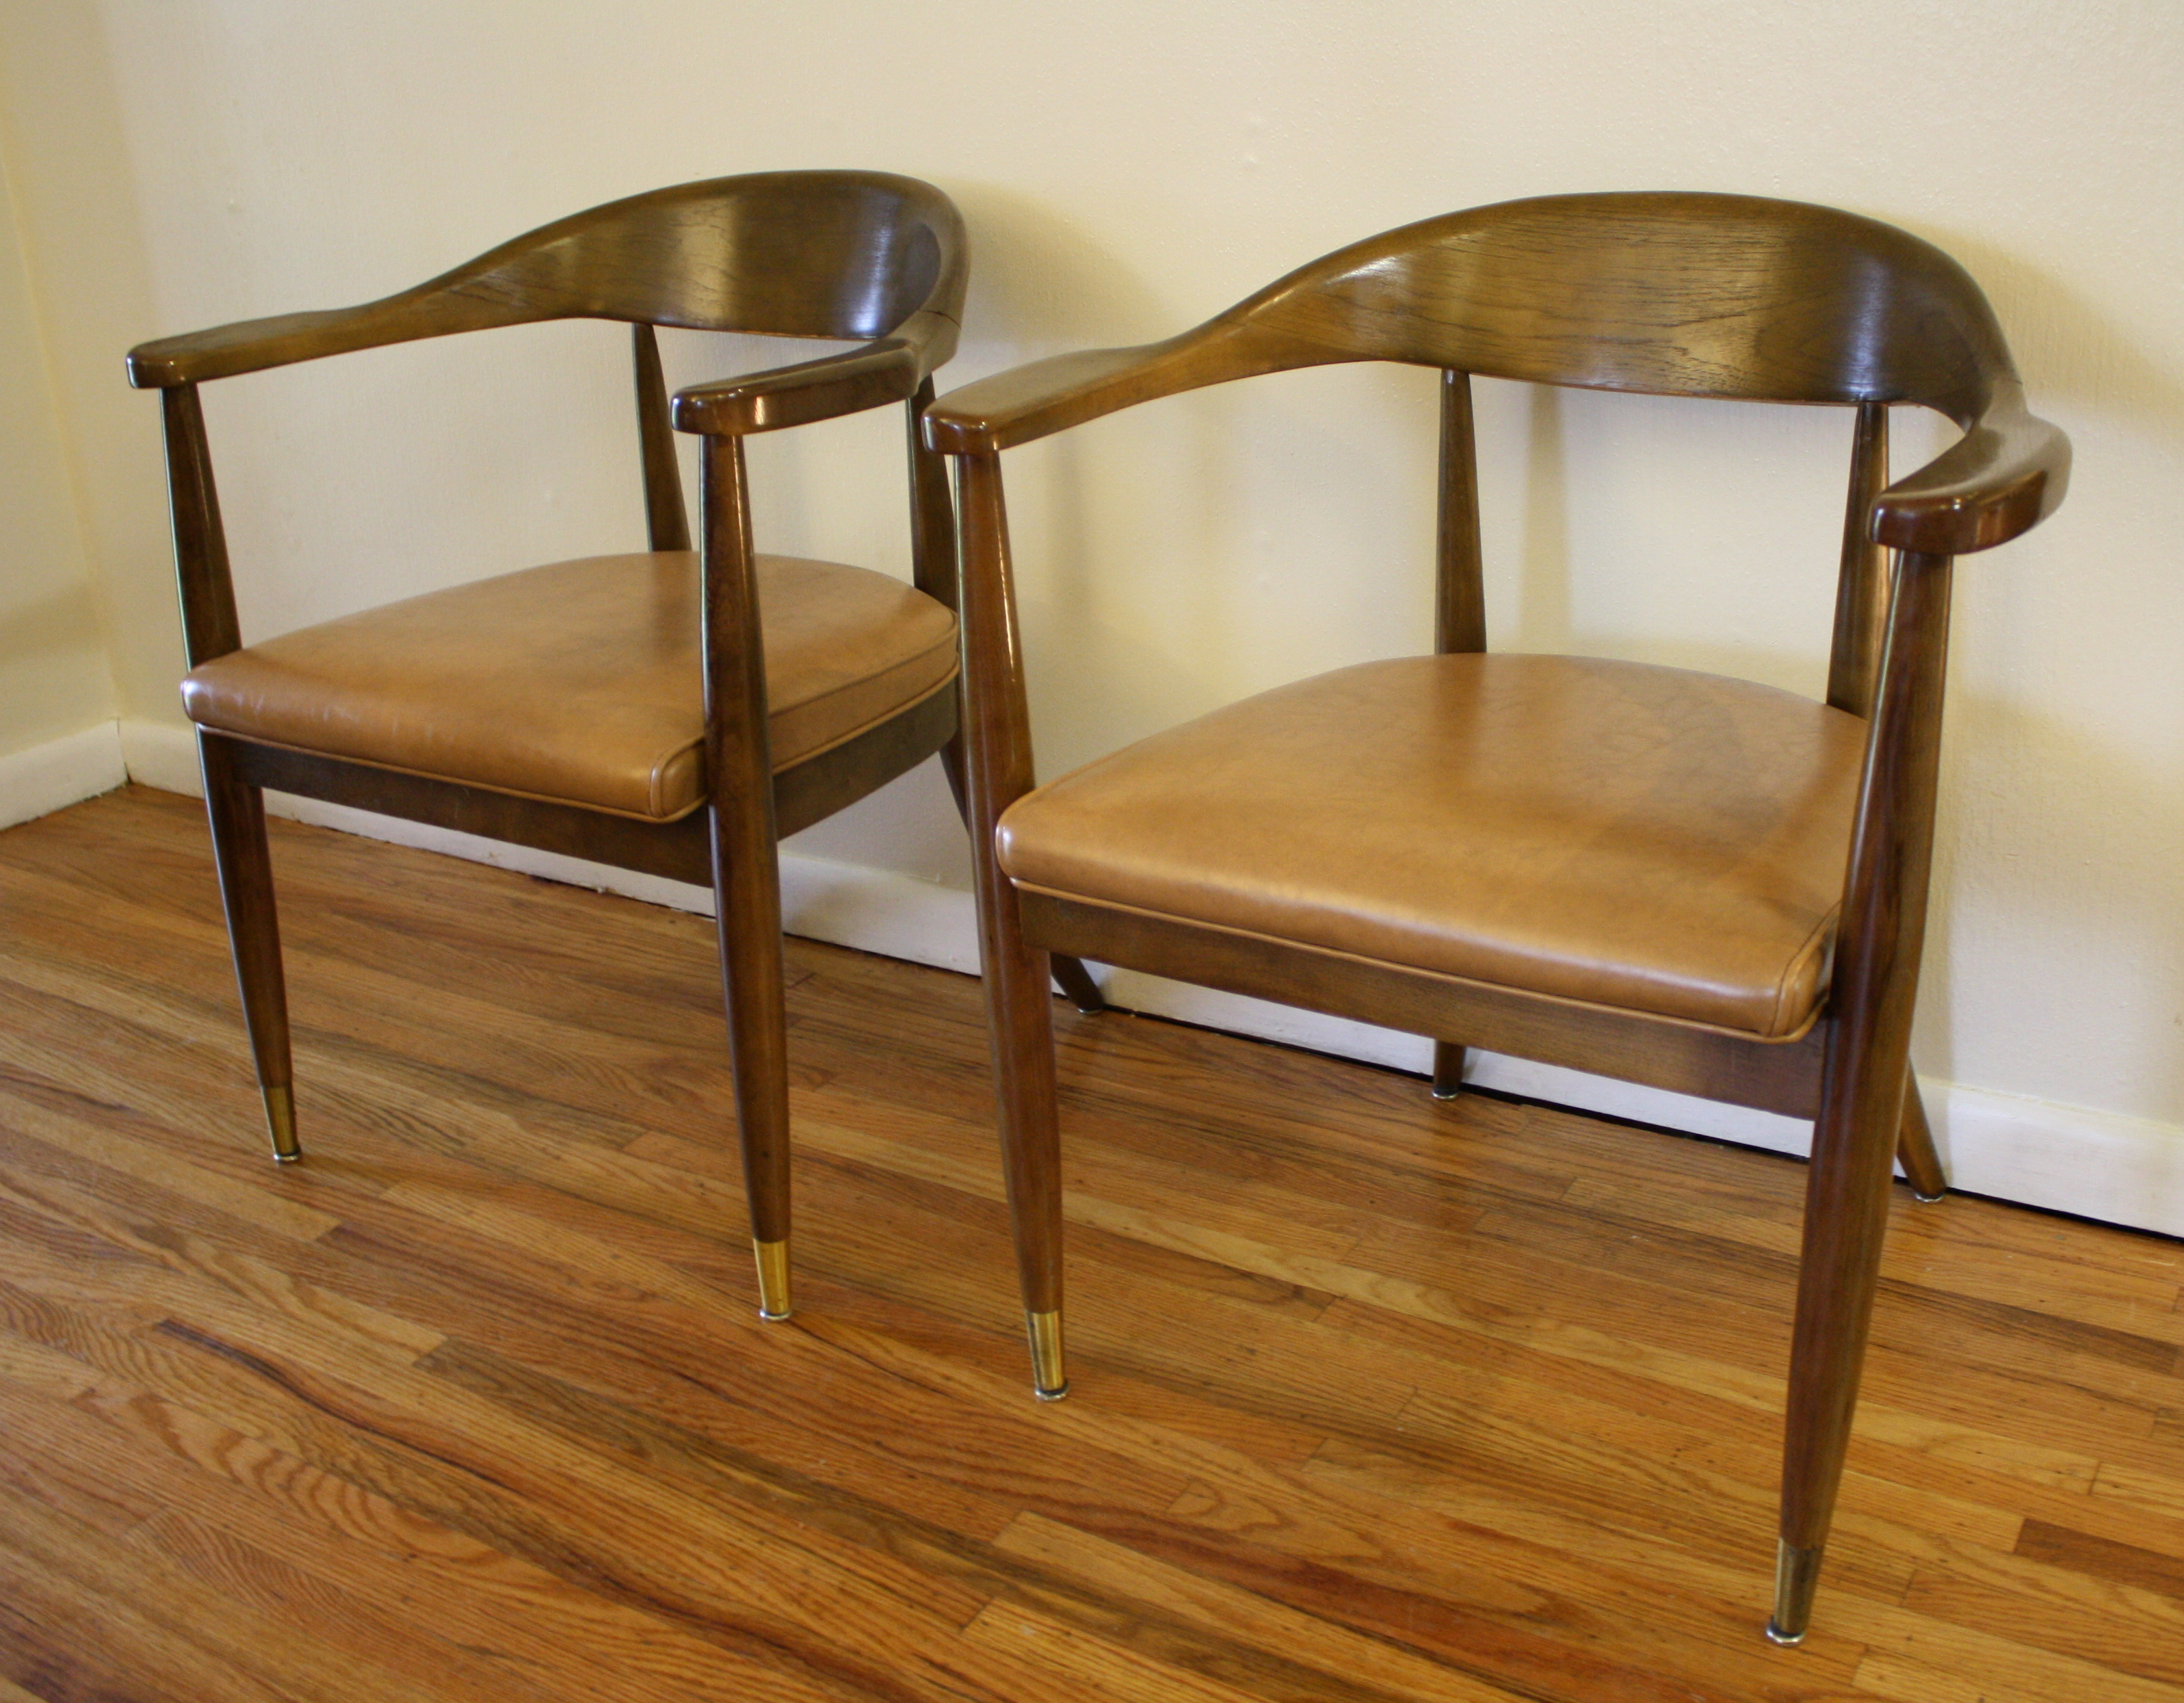 Mid Century Modern Chairs by the Boling Chair pany